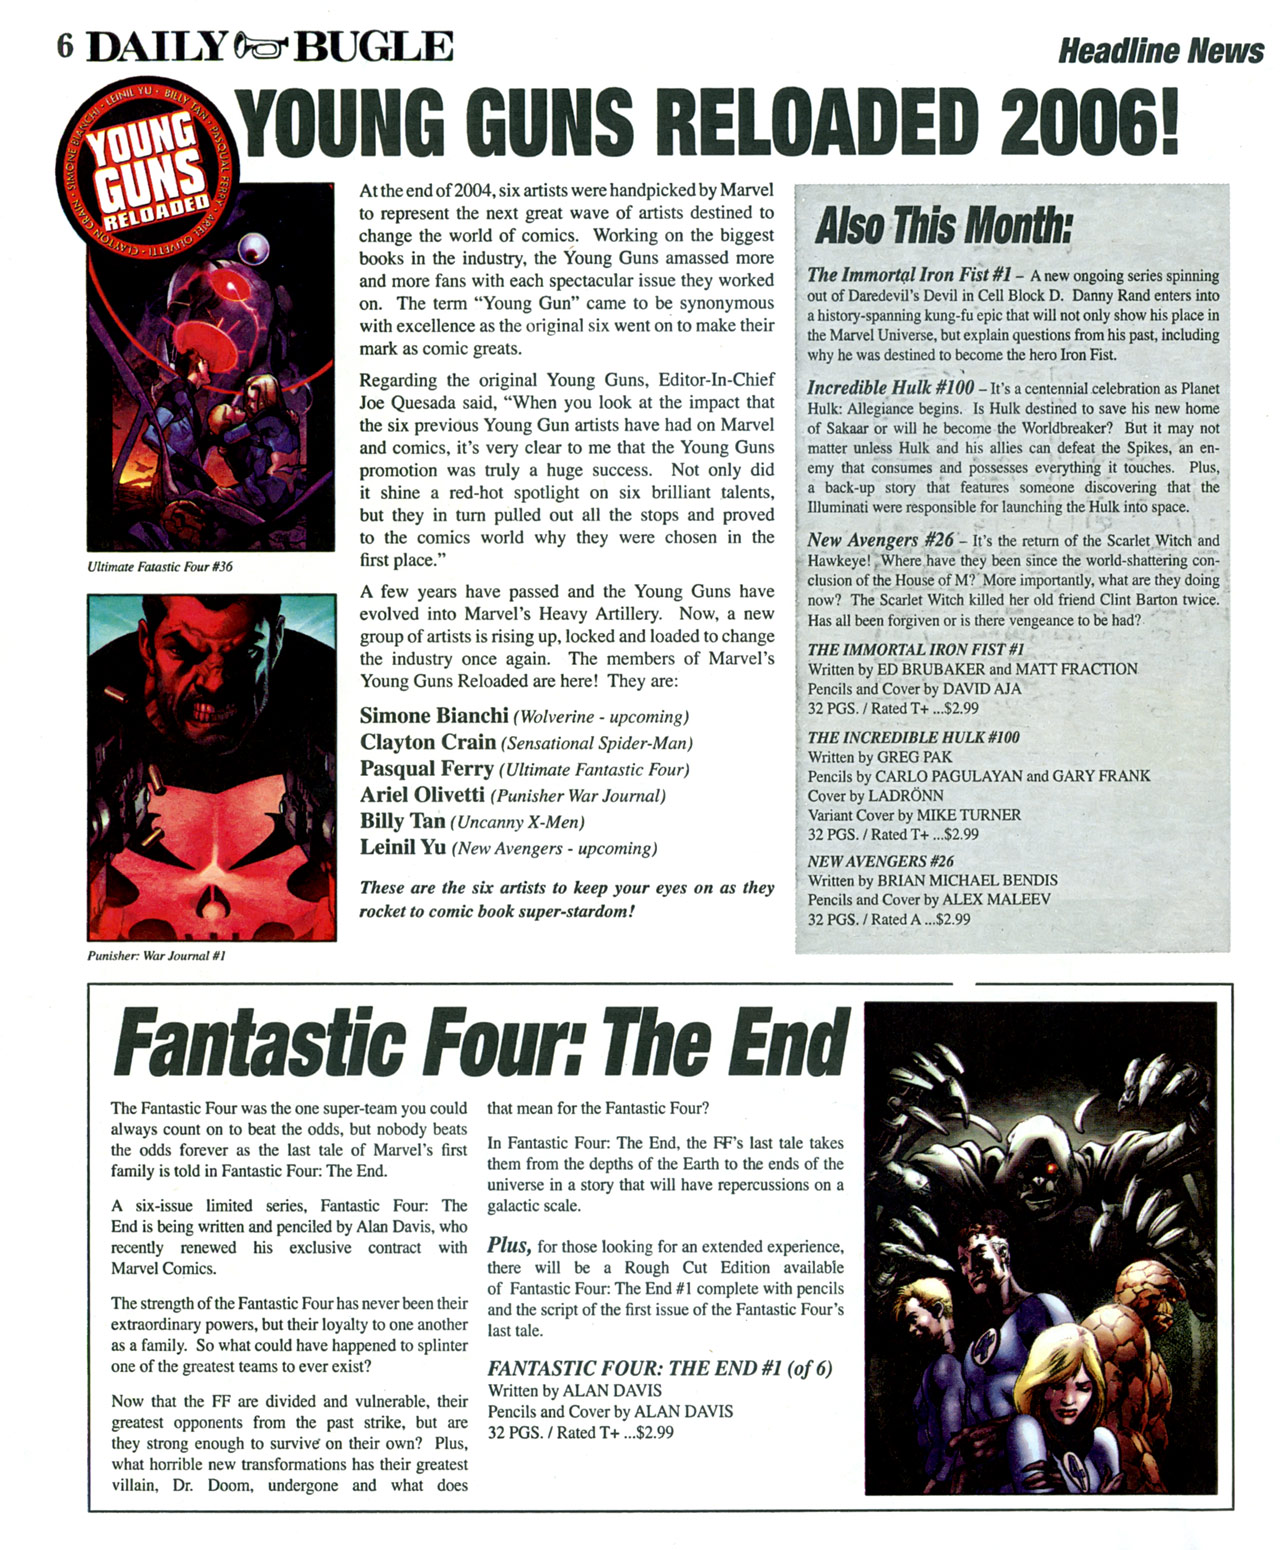 Read online Daily Bugle (2006) comic -  Issue #2 - 6